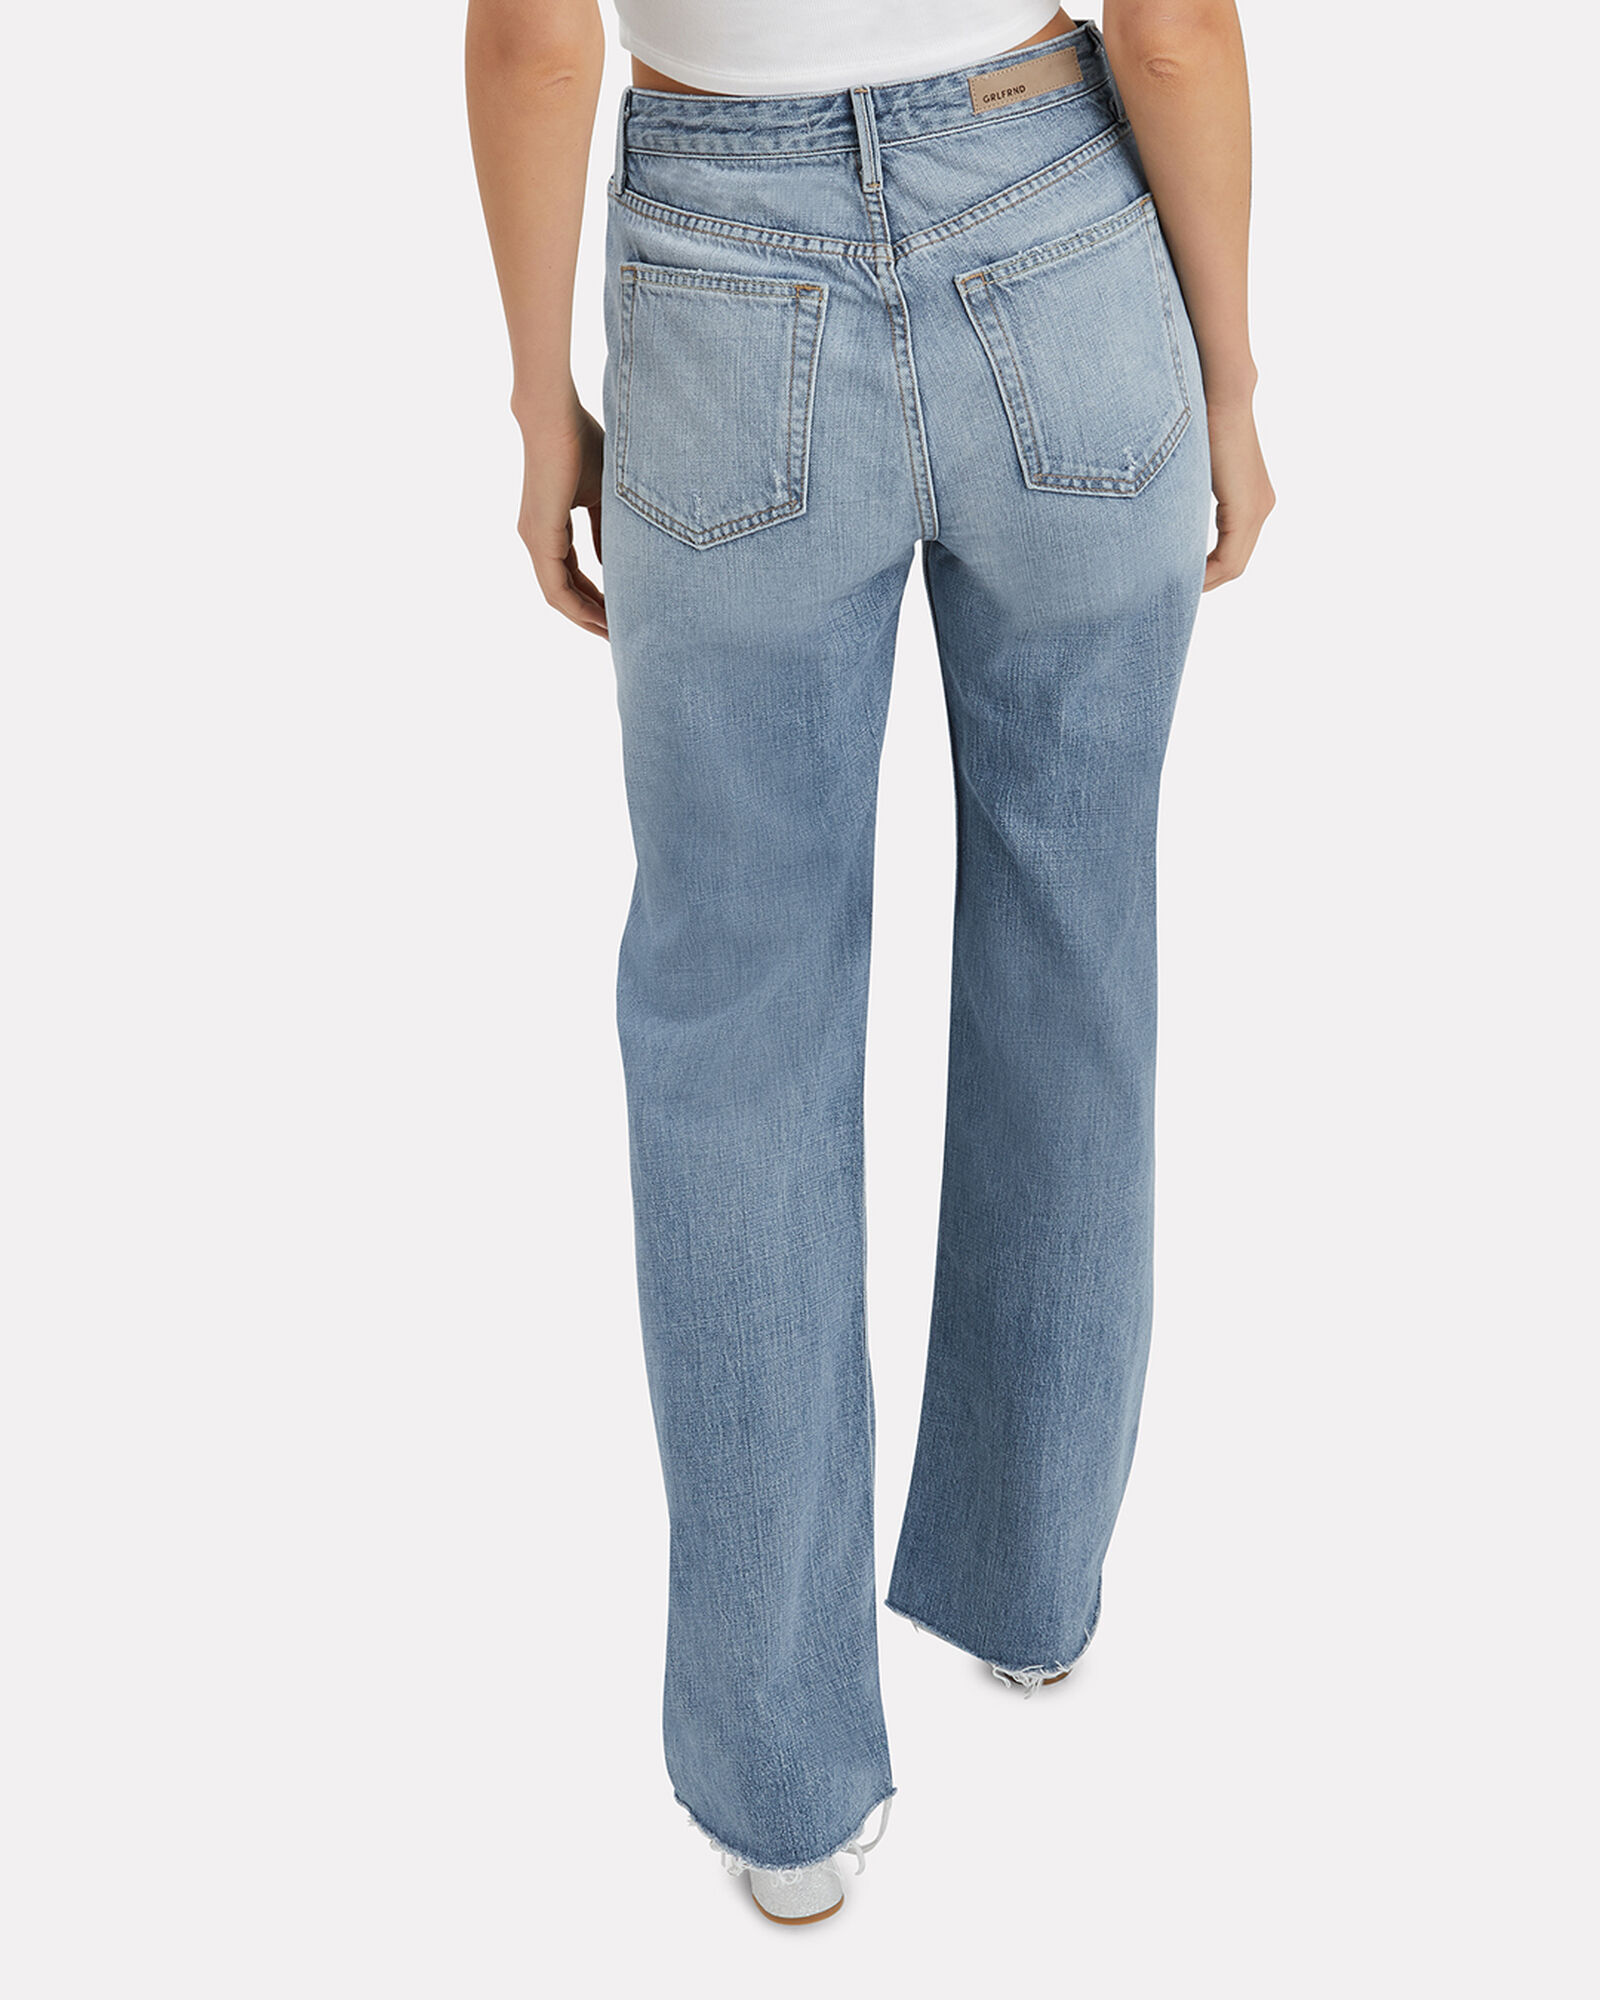 Carla Flare Jeans, MEDIUM WASH DENIM, hi-res